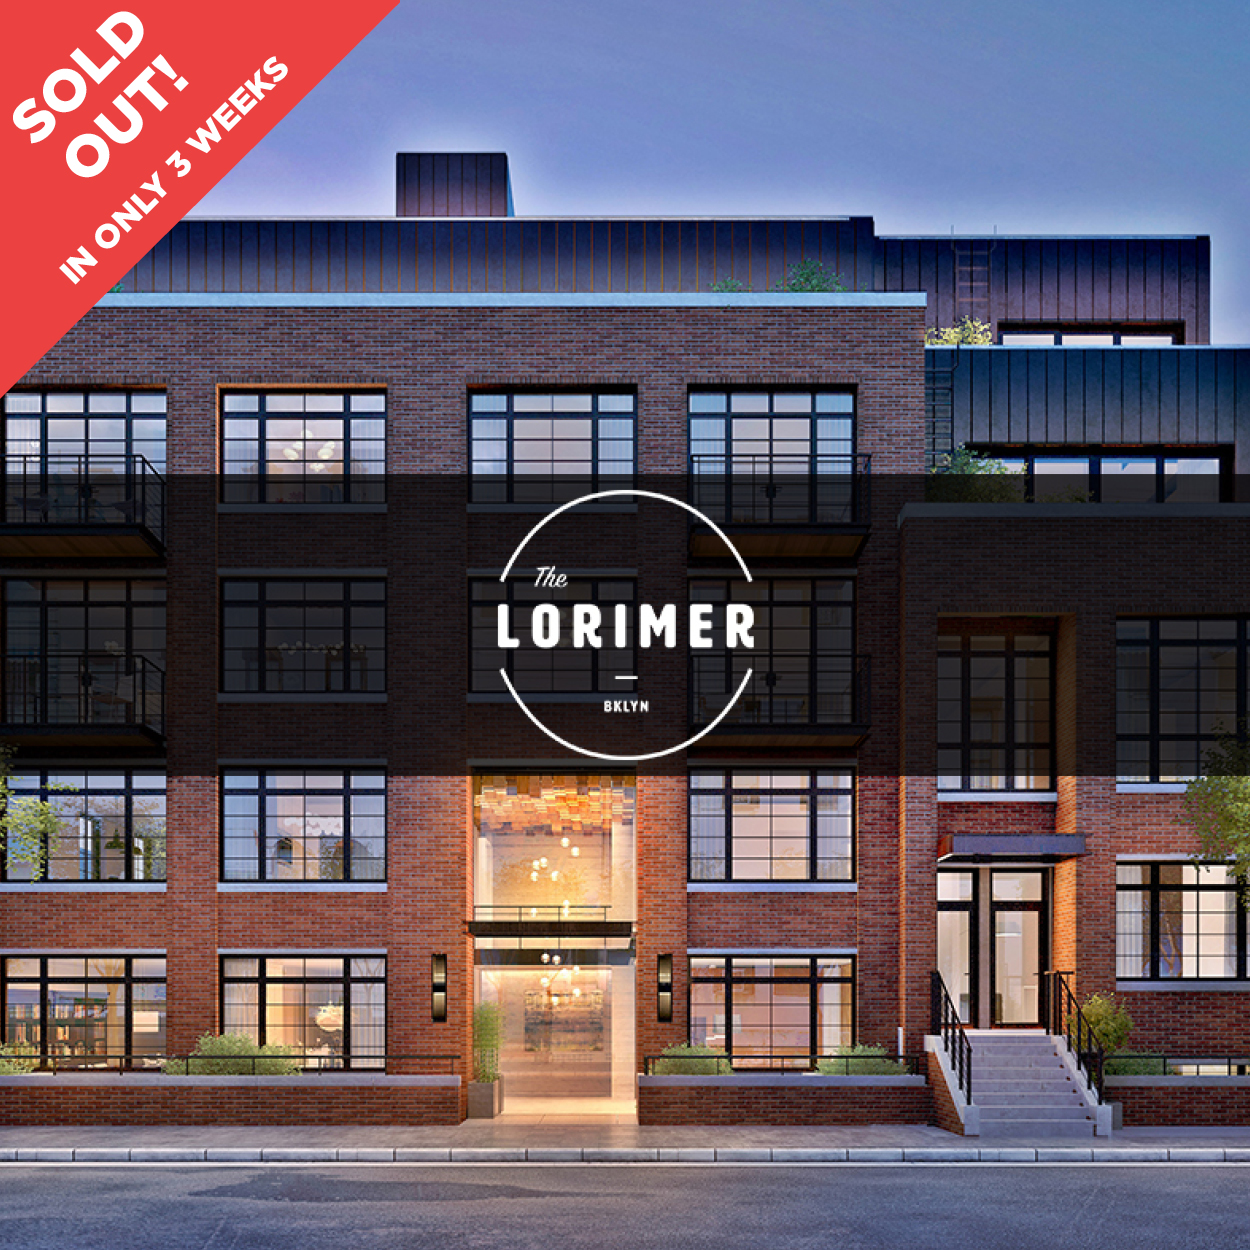 537 LORIMER STREET - Williamsburg